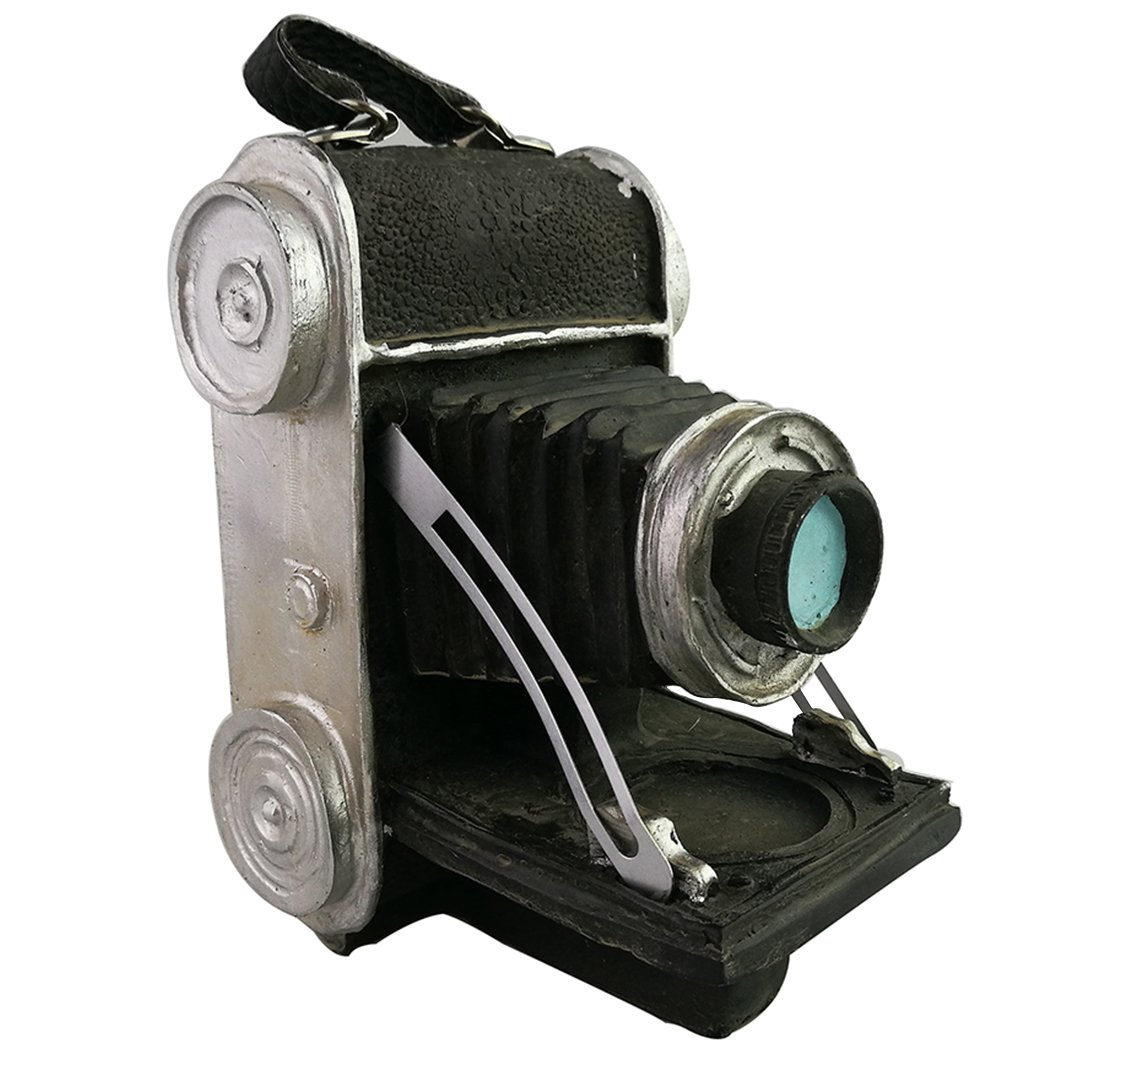 Creative Retro Vintage Old Fashion Resin Camera Model Resemblance Ornament for Home Bar Decoration 0